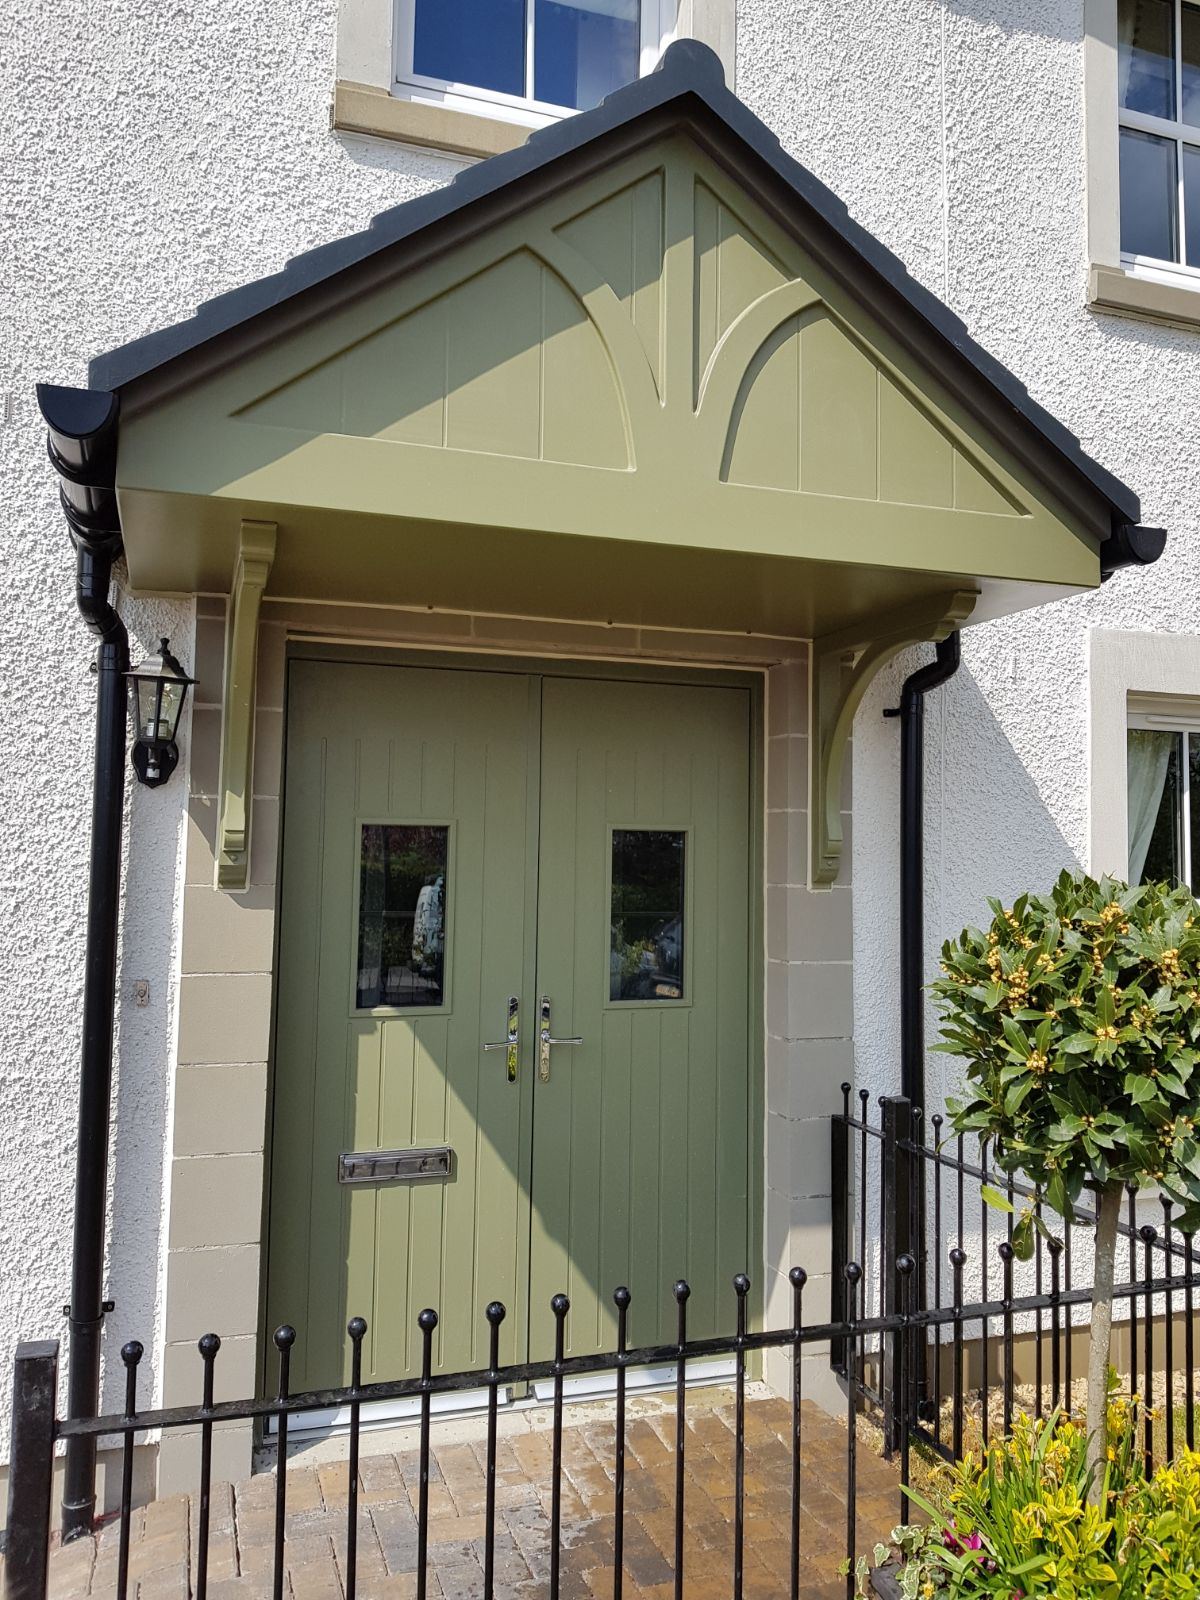 Residential - House in Thorntonhall - Colour Change from White to Lichen